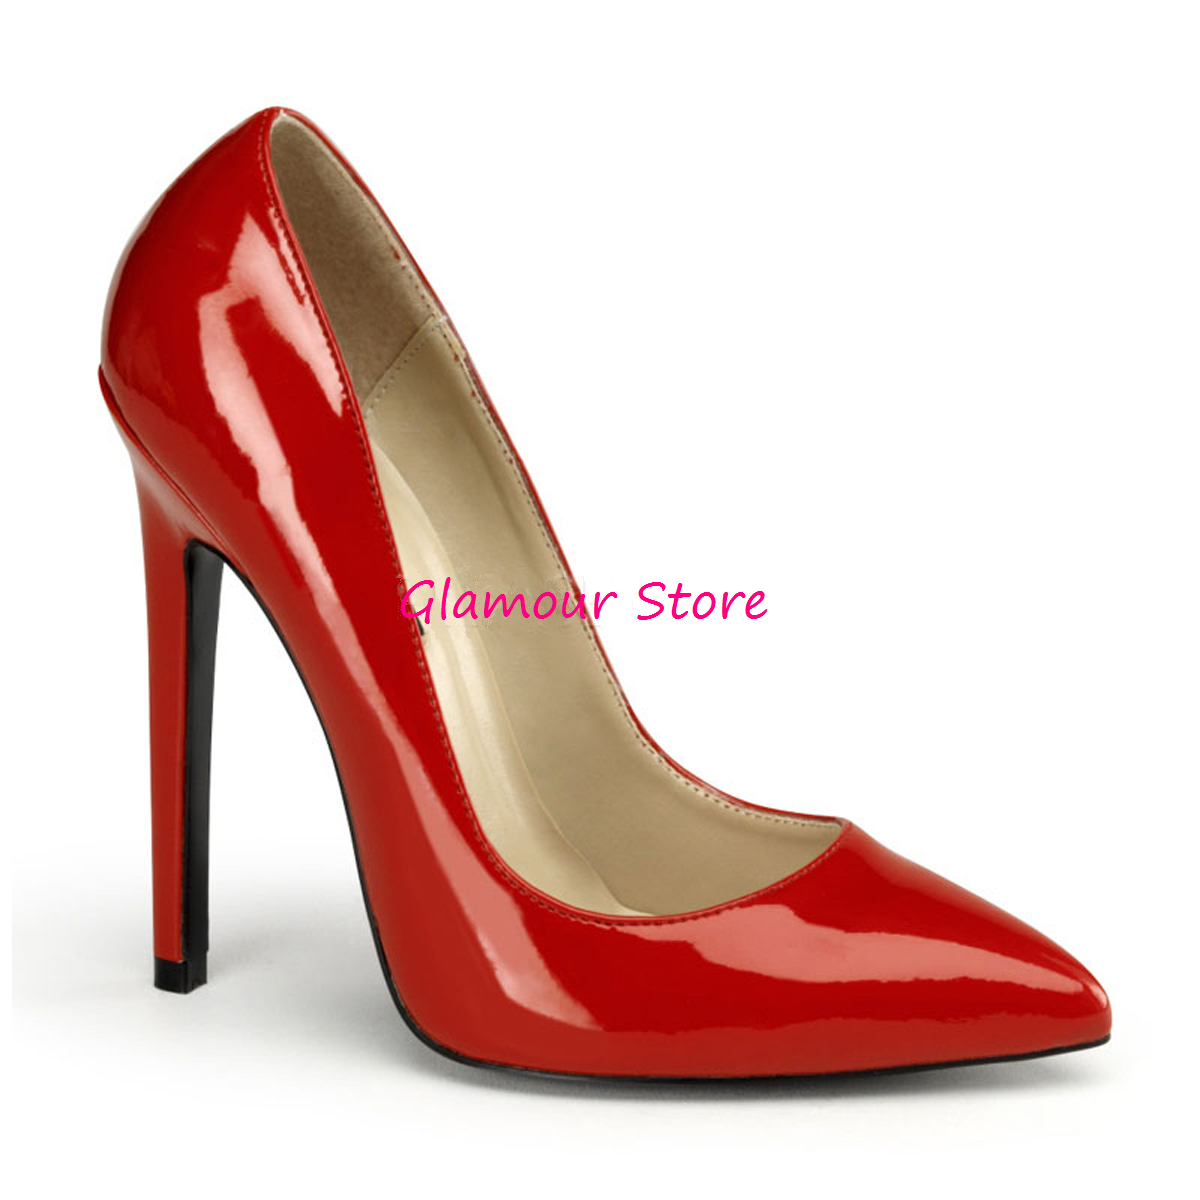 Sexy DECOLTE' a punta tacco 13 red lucido dal 35 al 44 shoes fashion GLAMOUR